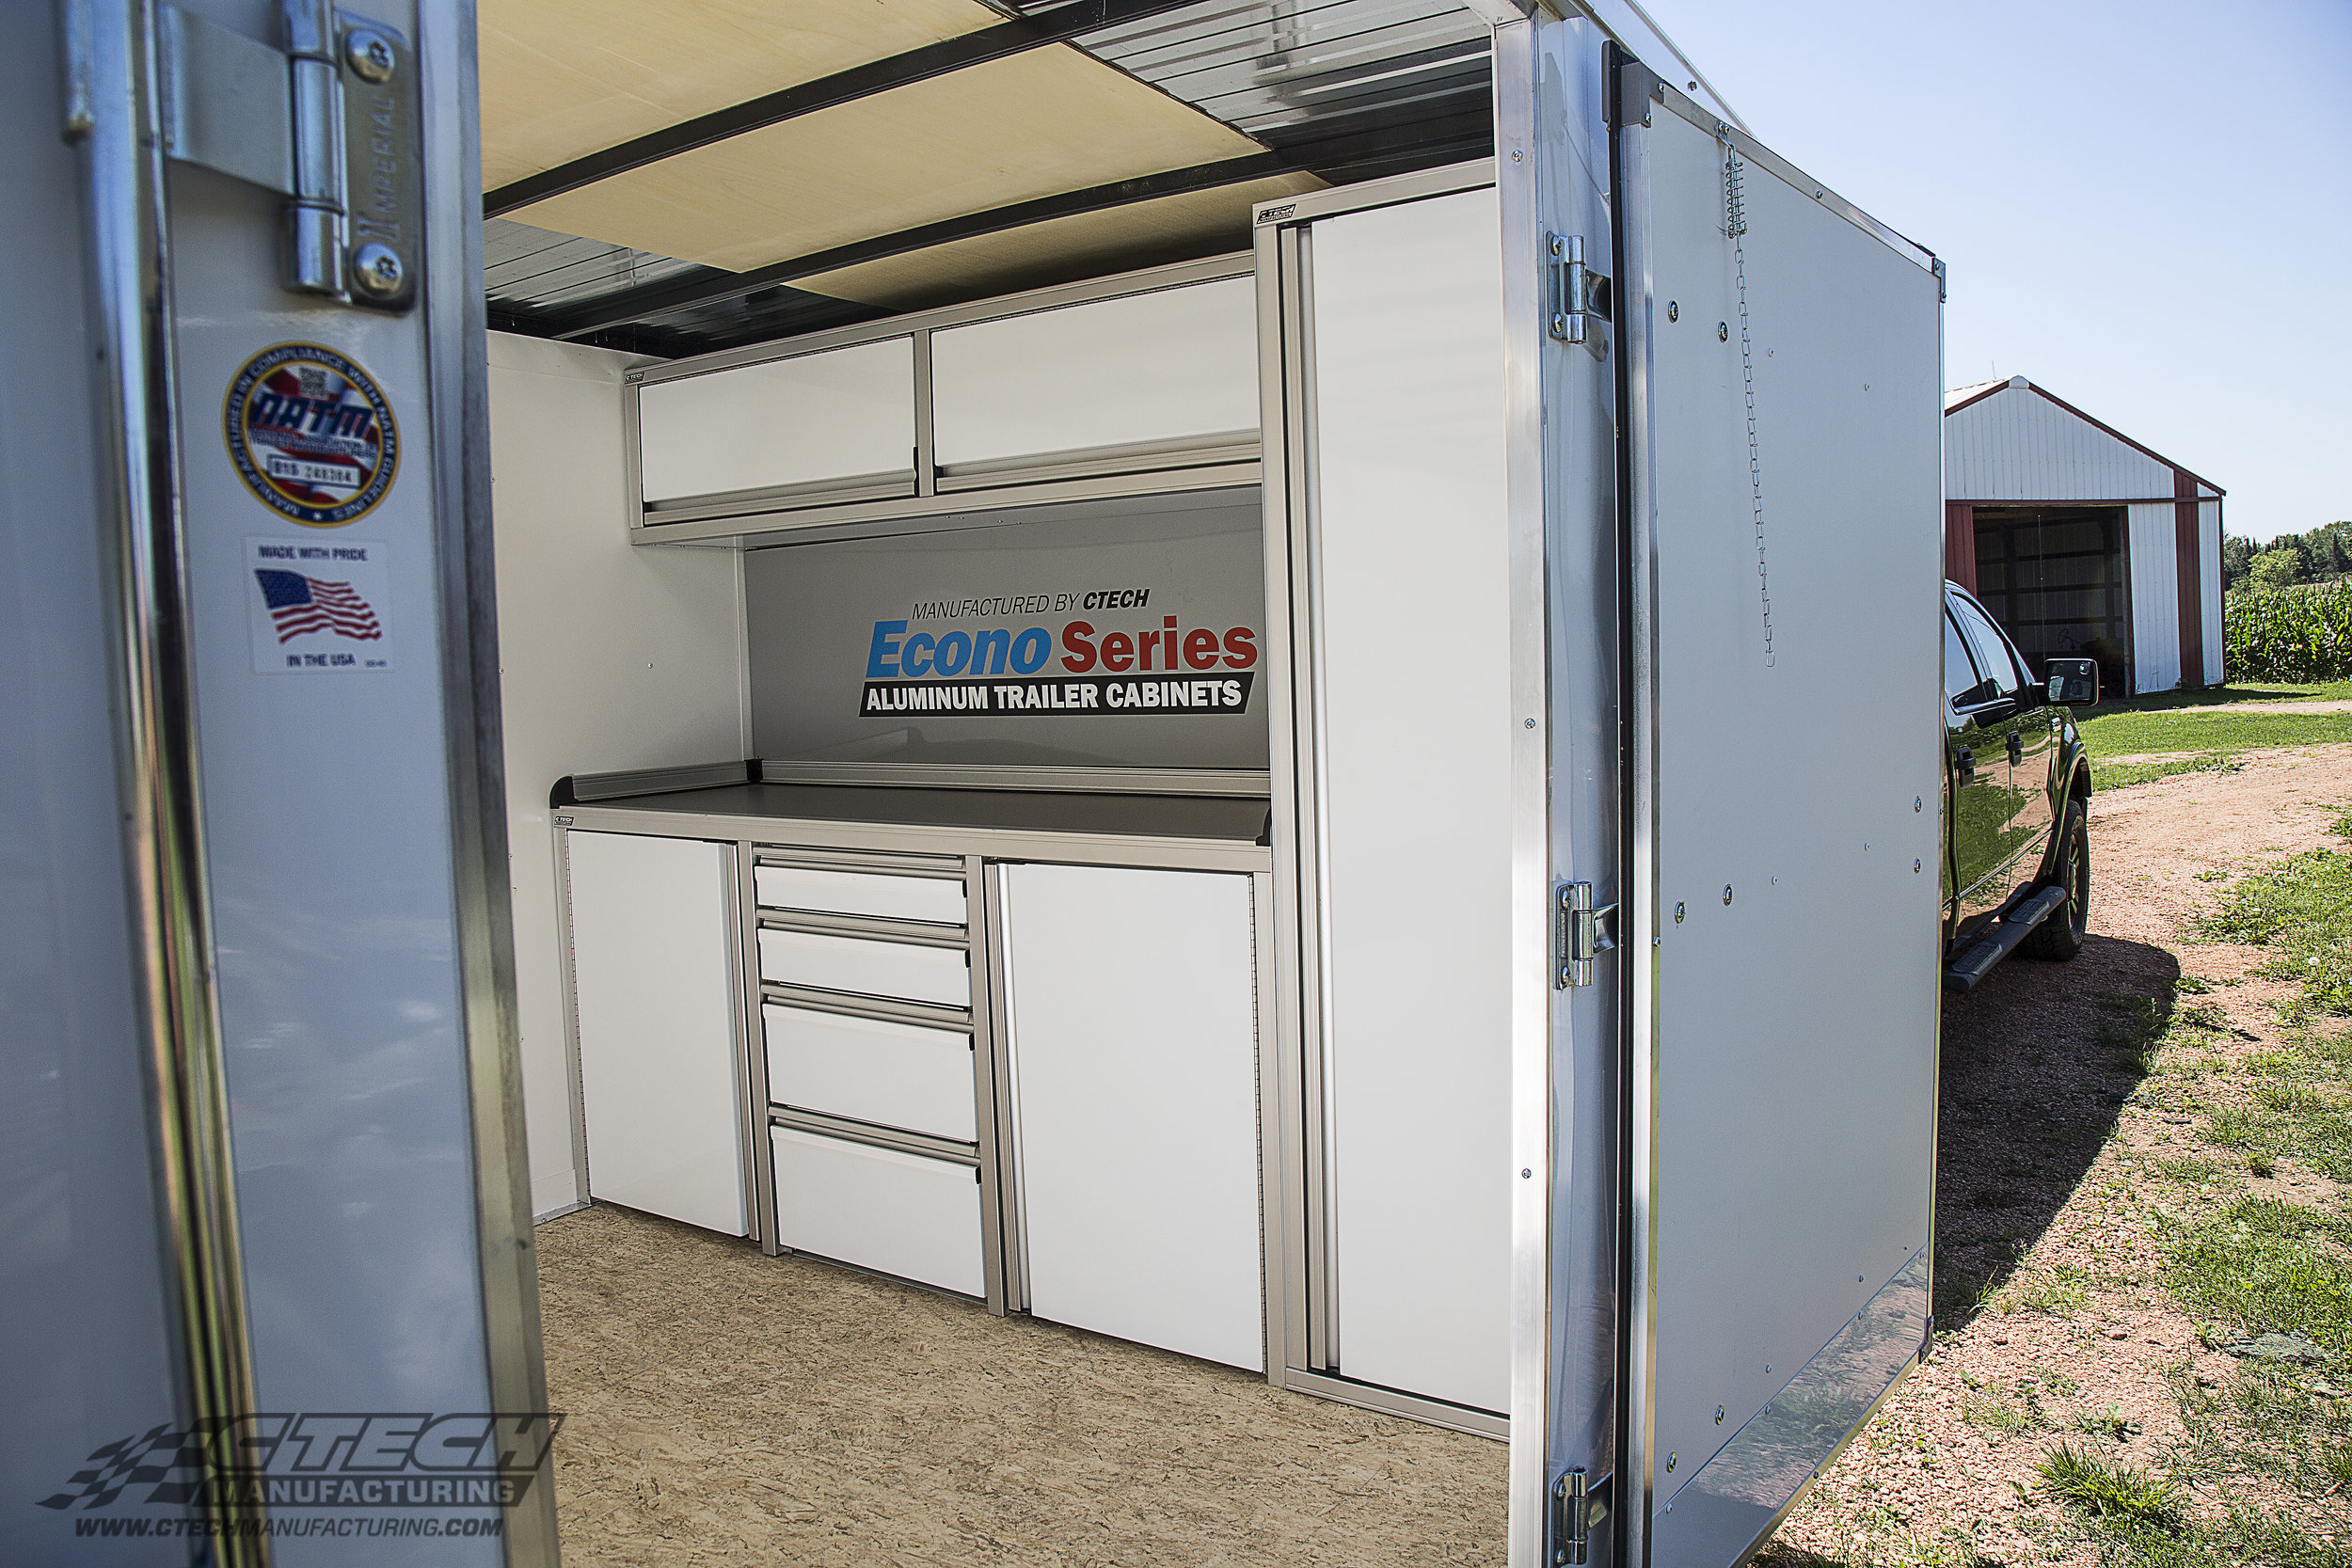 Unlock your trailer's true potential with Econo Series trailer cabinets from CTECH, designed to optimize and expand your interior trailer storage and workspace. Econo cabinets are available in many affordable configurations, are delivered quickly and can be easily installed. BOM Q31477